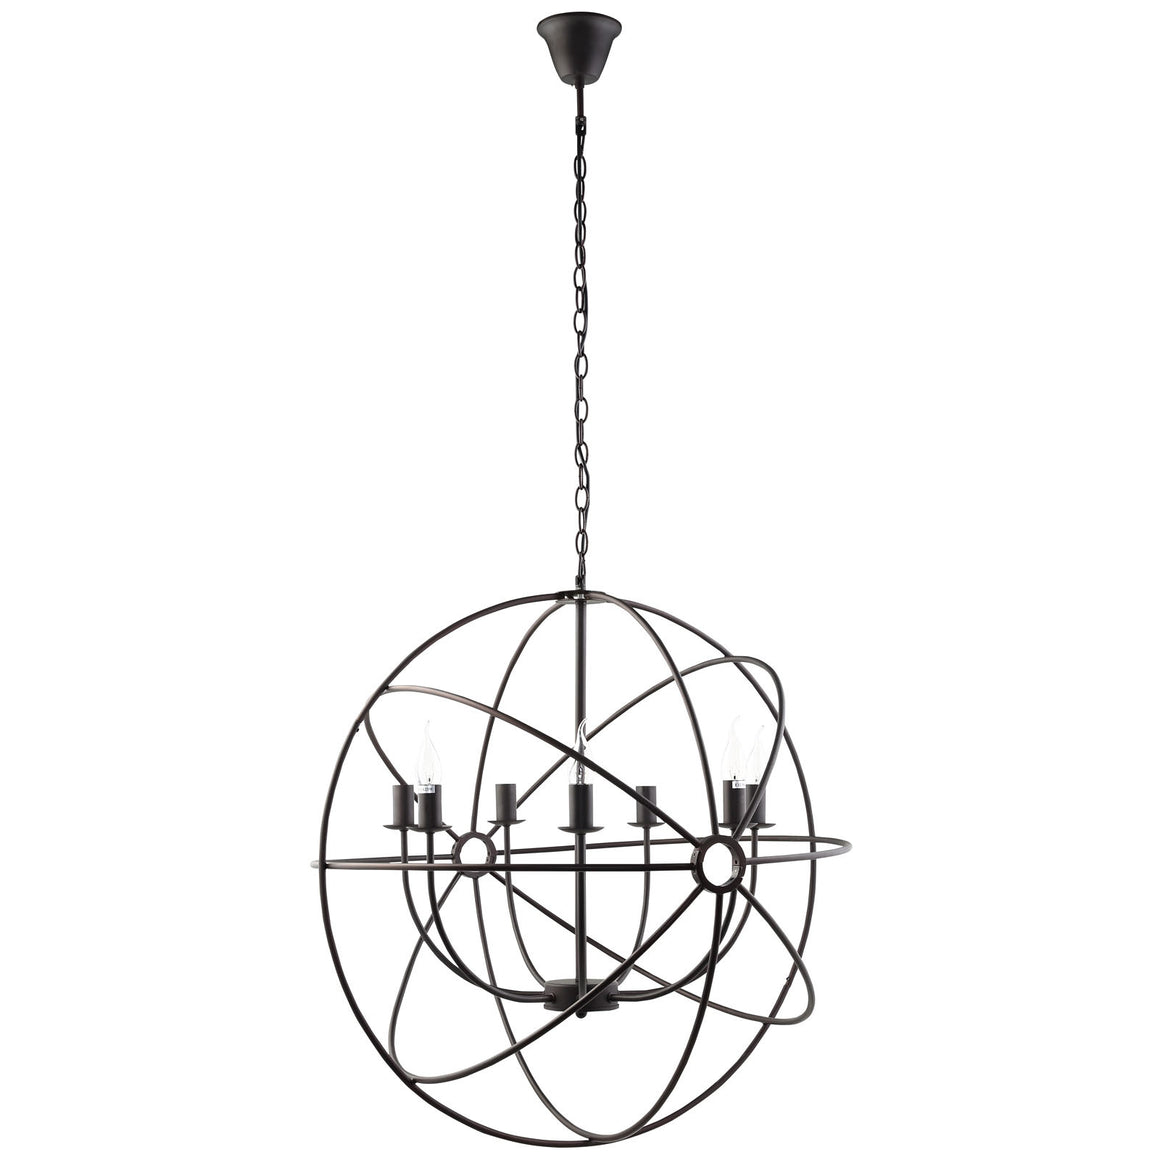 "Atom 29.5"" Medium Chandelier - taylor ray decor"